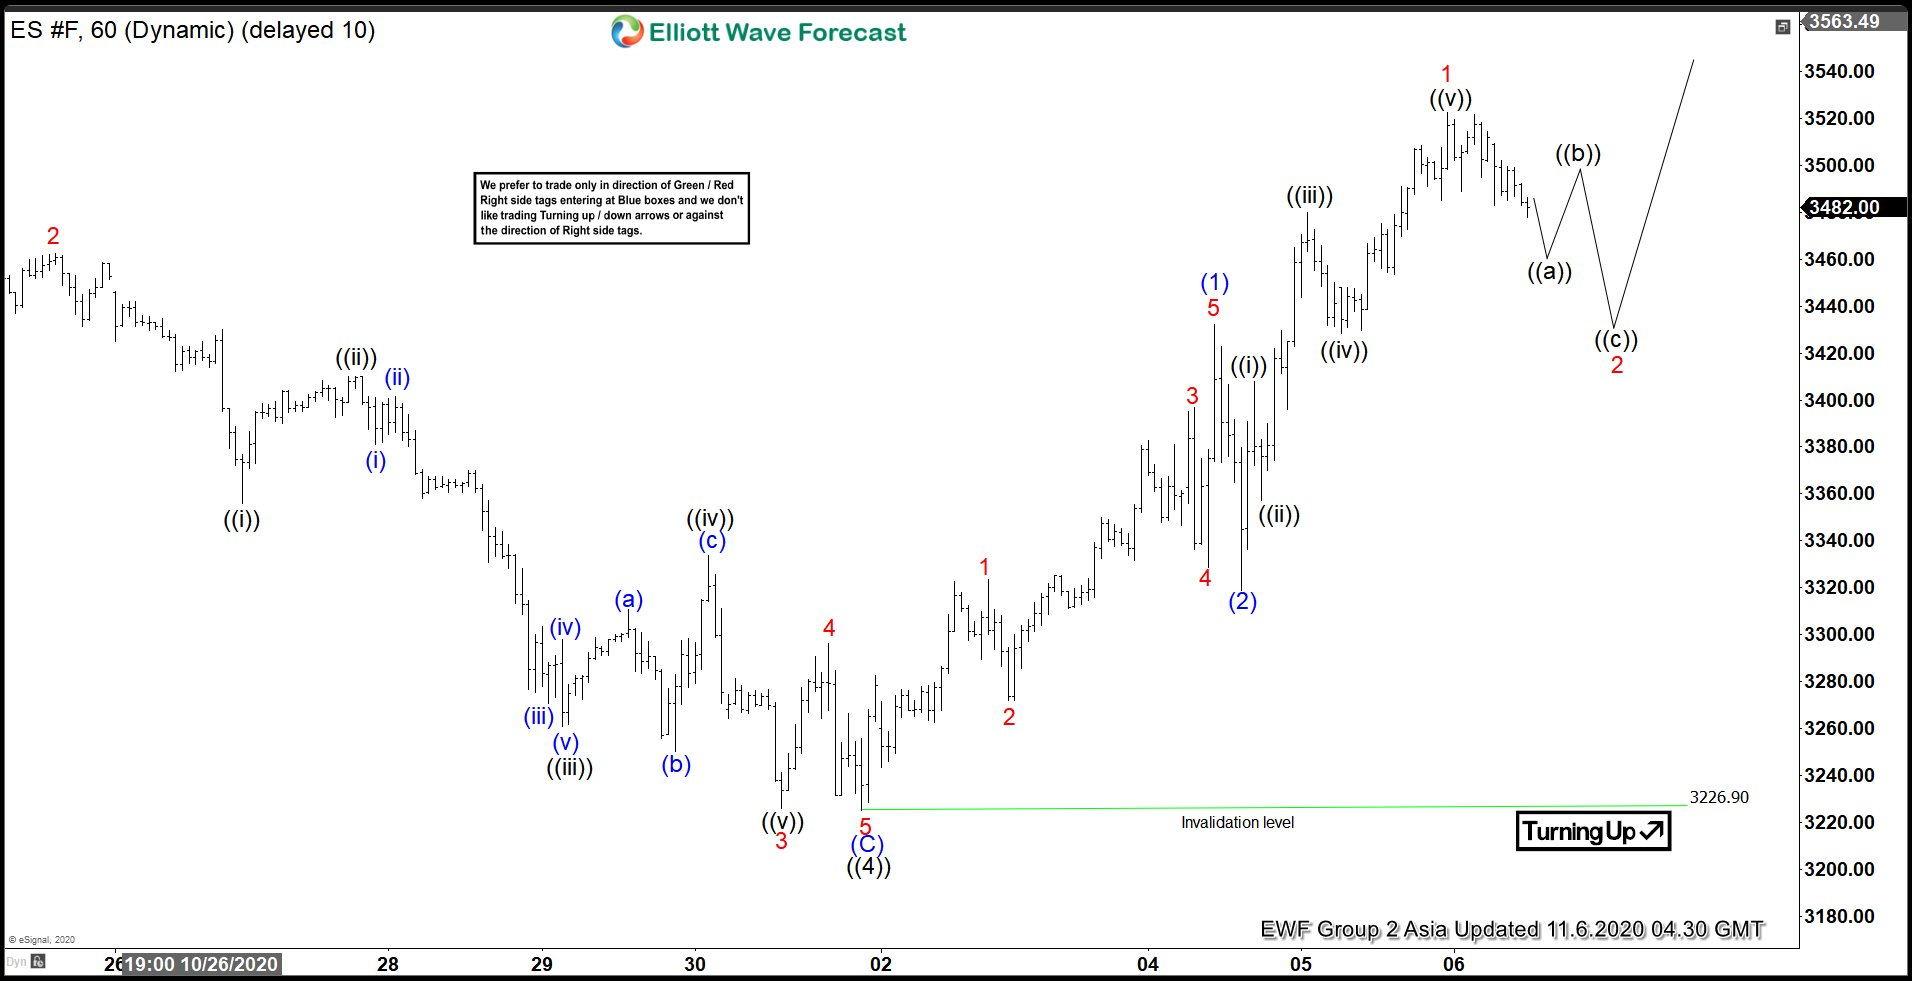 Elliott Wave View: S&P 500 E-Mini Futures (ES) Resumes Rally Higher